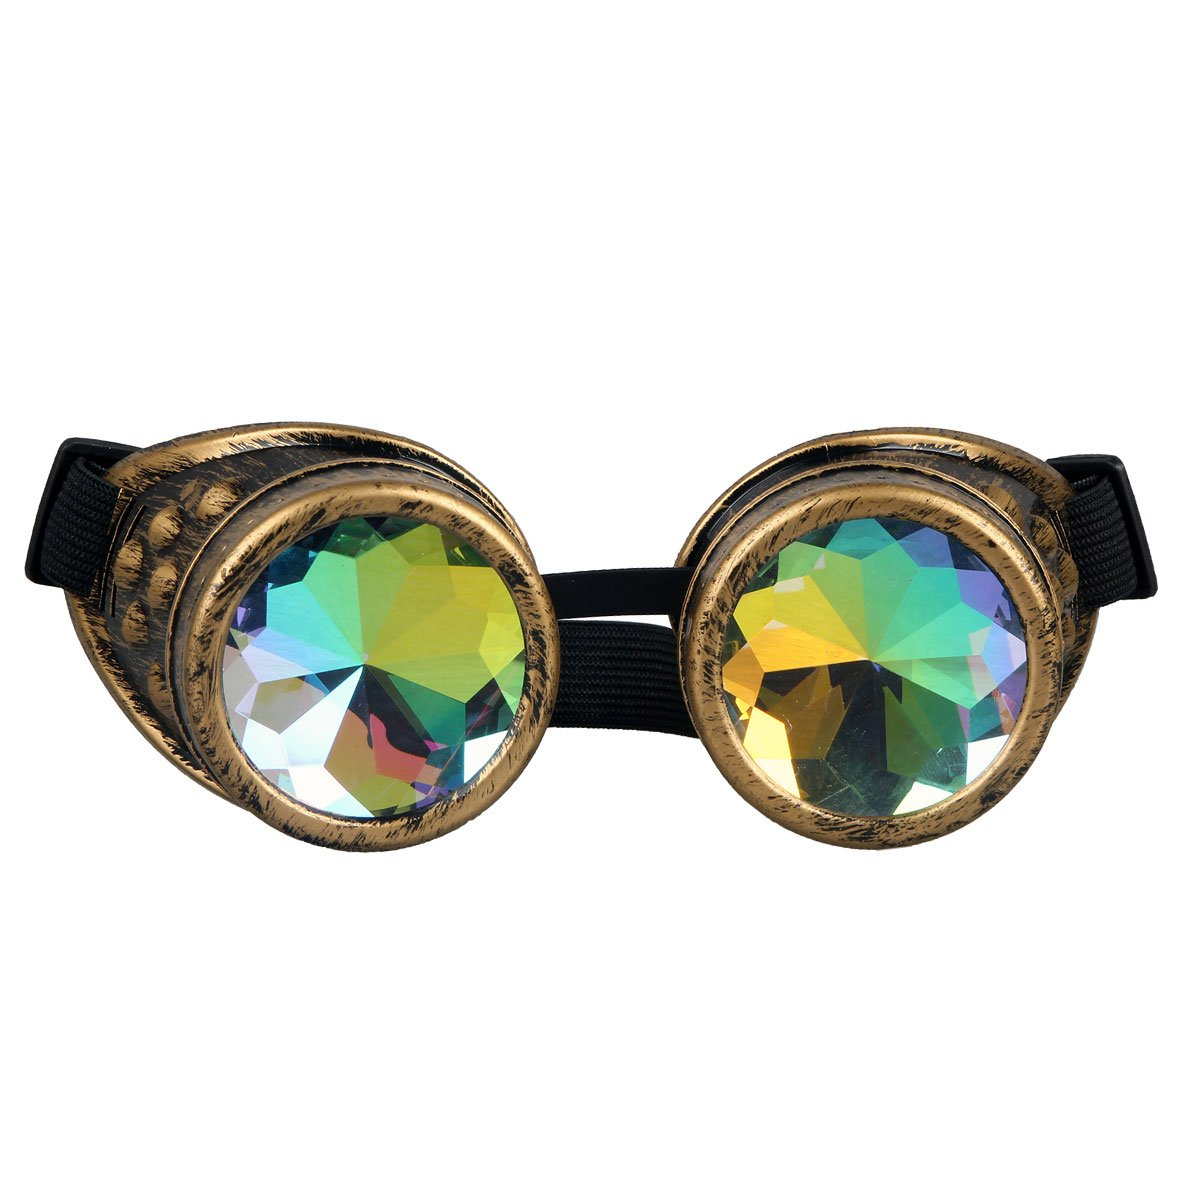 Brasswithout Spiked 35 Days Delivery Kaleidoscope Rave Rainbow Crystal Lenses Steampunk Goggles